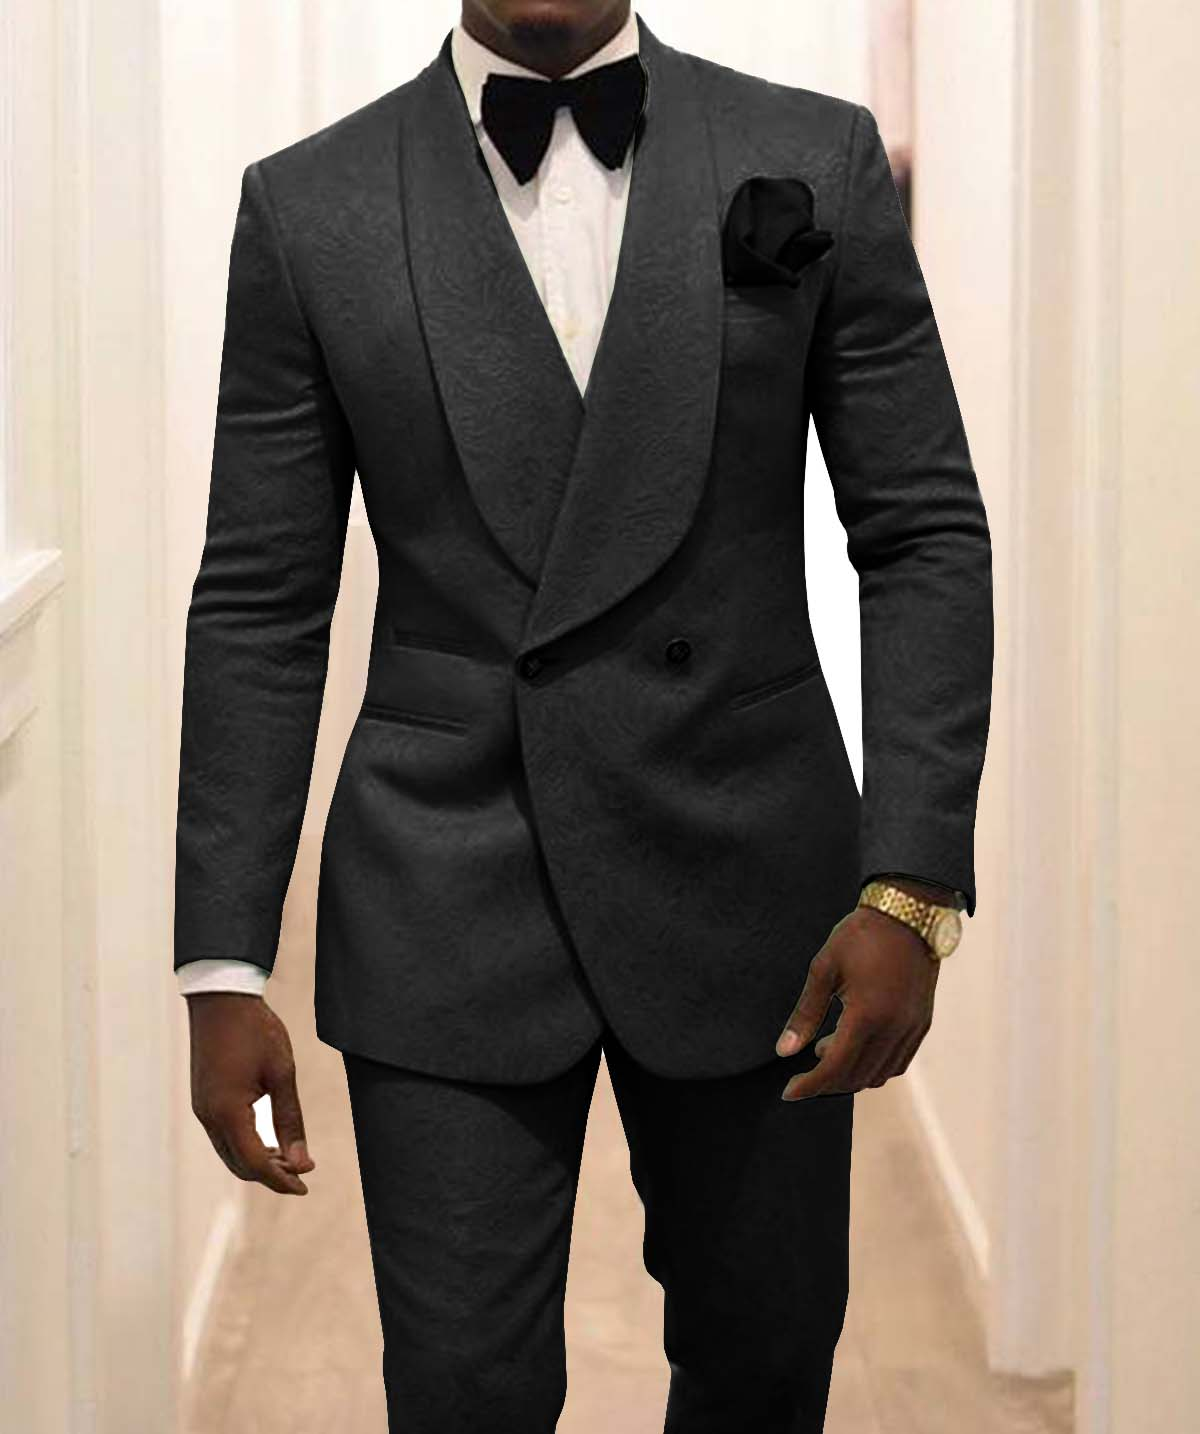 New Arrival Groomsmen Black Pattern Groom Tuxedos Shawl Lapel Men Suits 2 Pieces Wedding Best Man ( Jacket+Pants+Tie ) C926